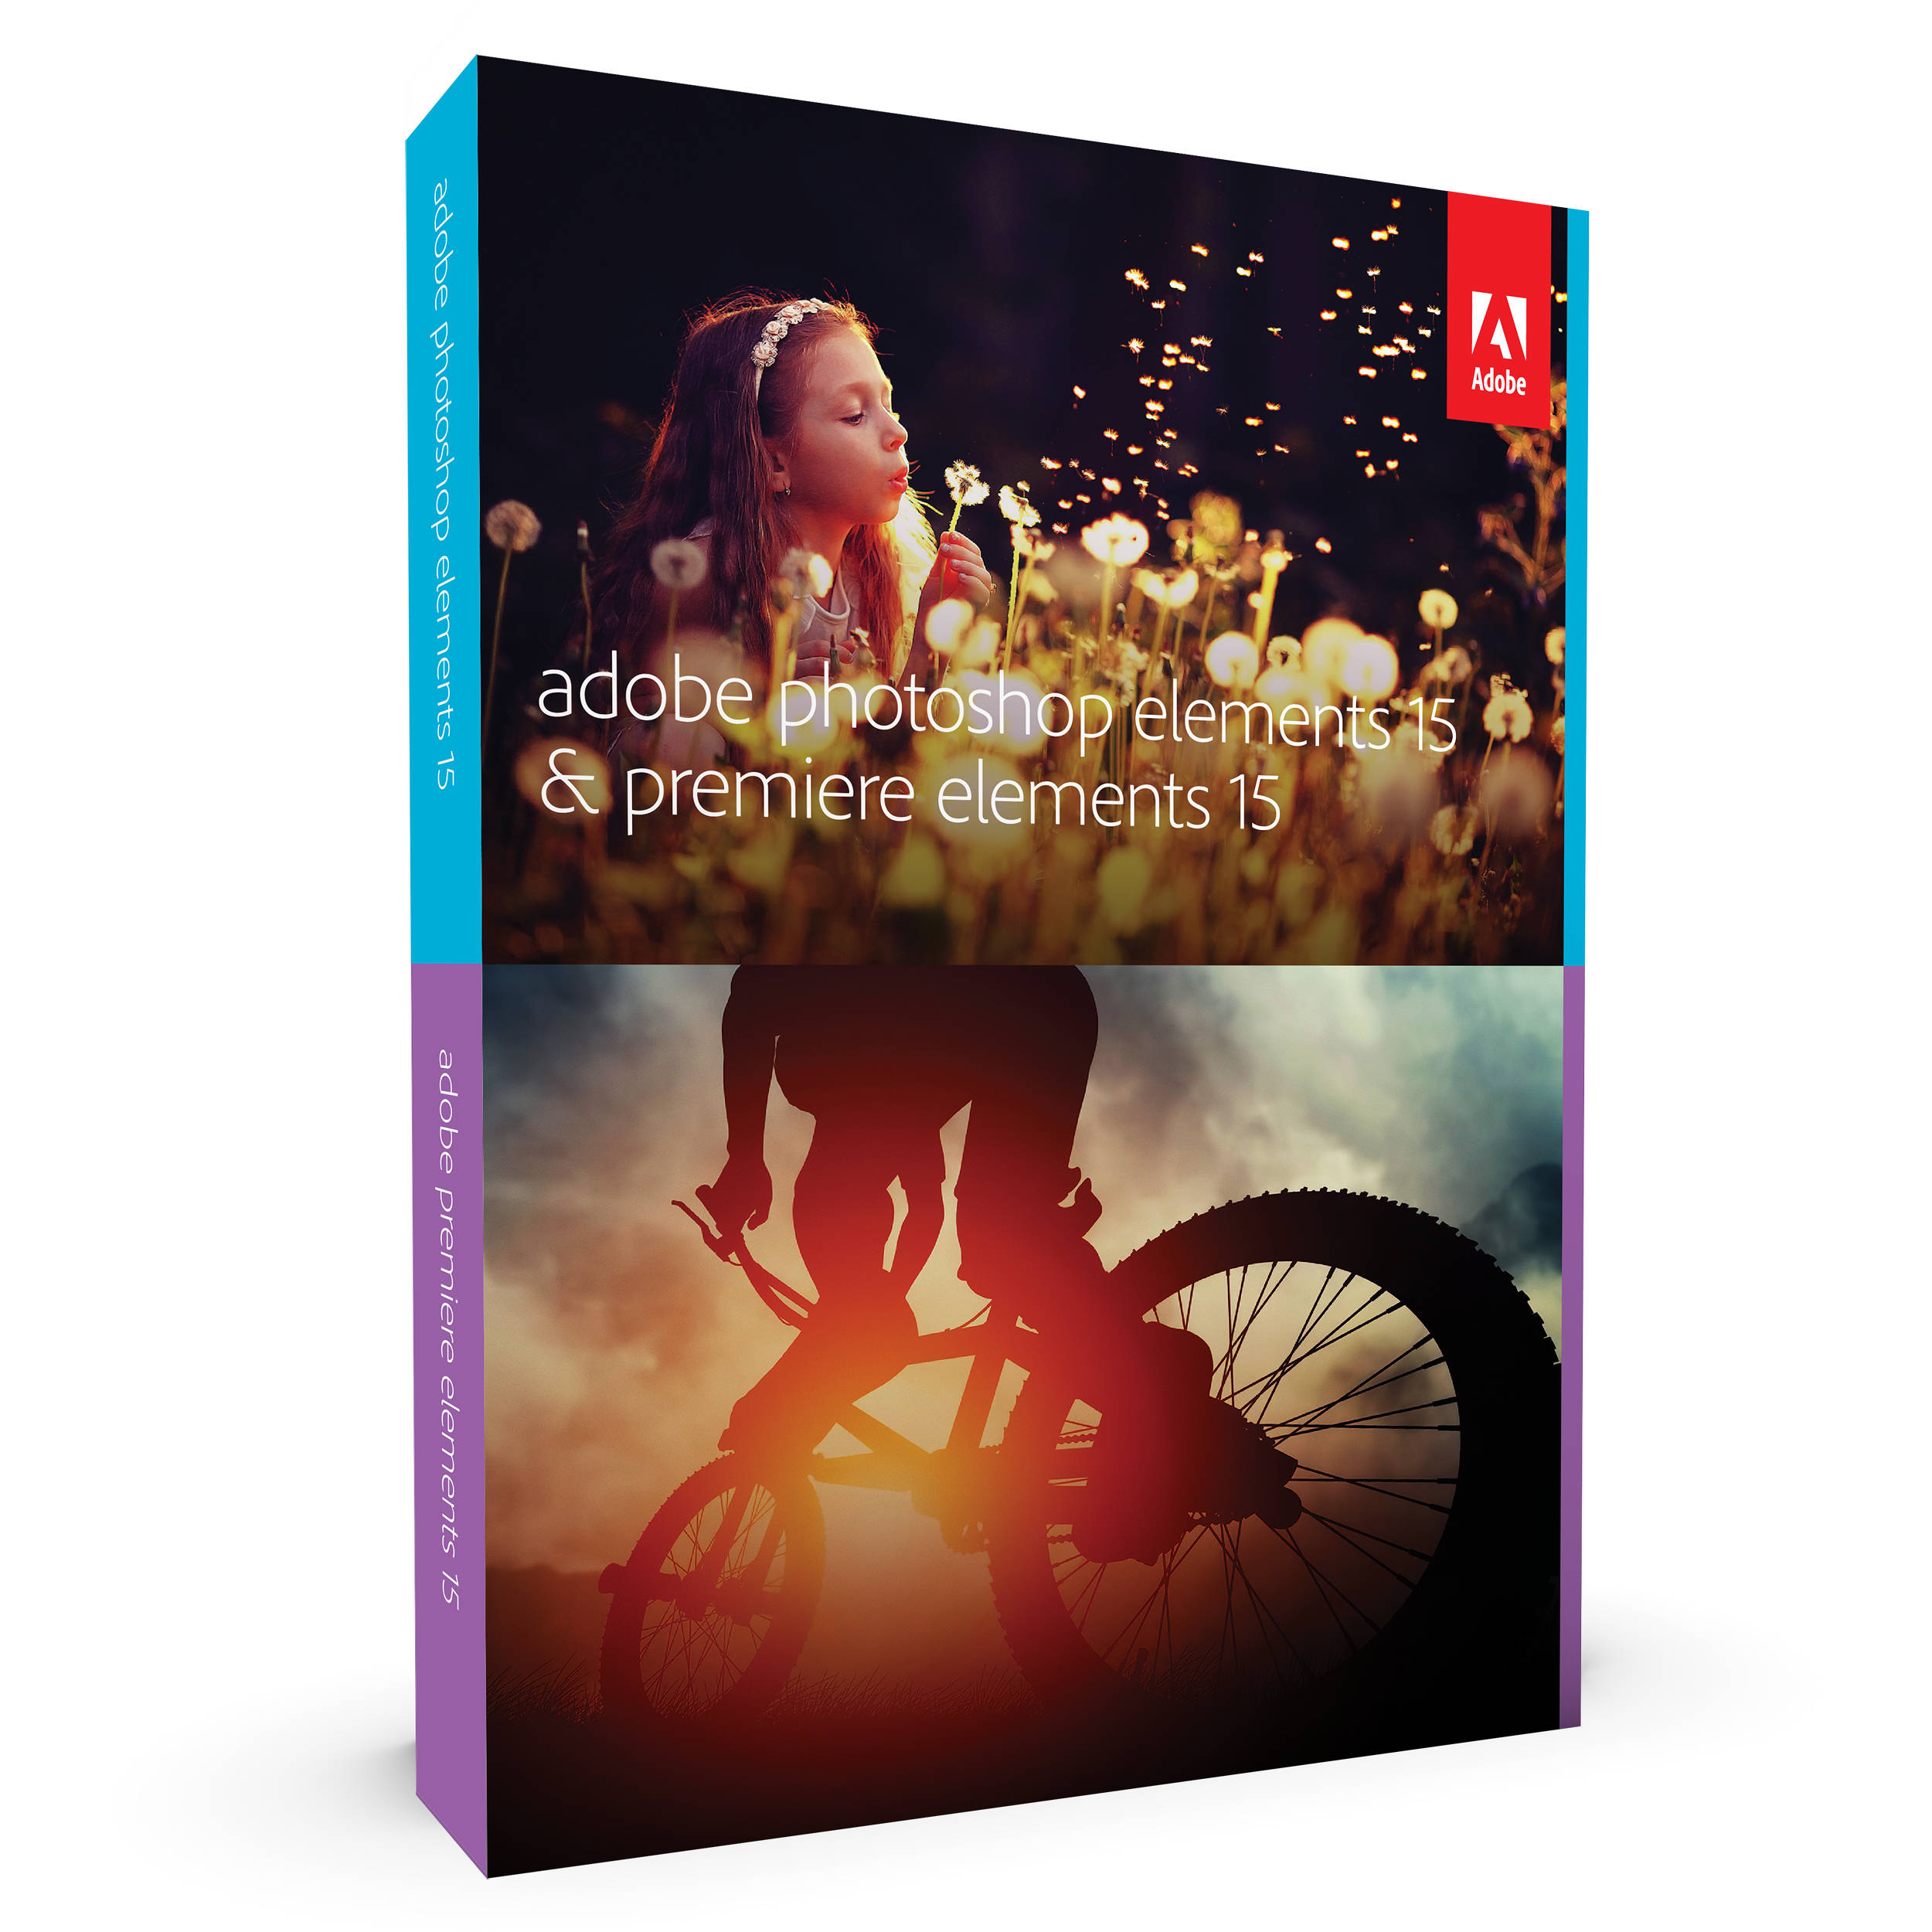 Adobe photoshop elements premiere elements 7